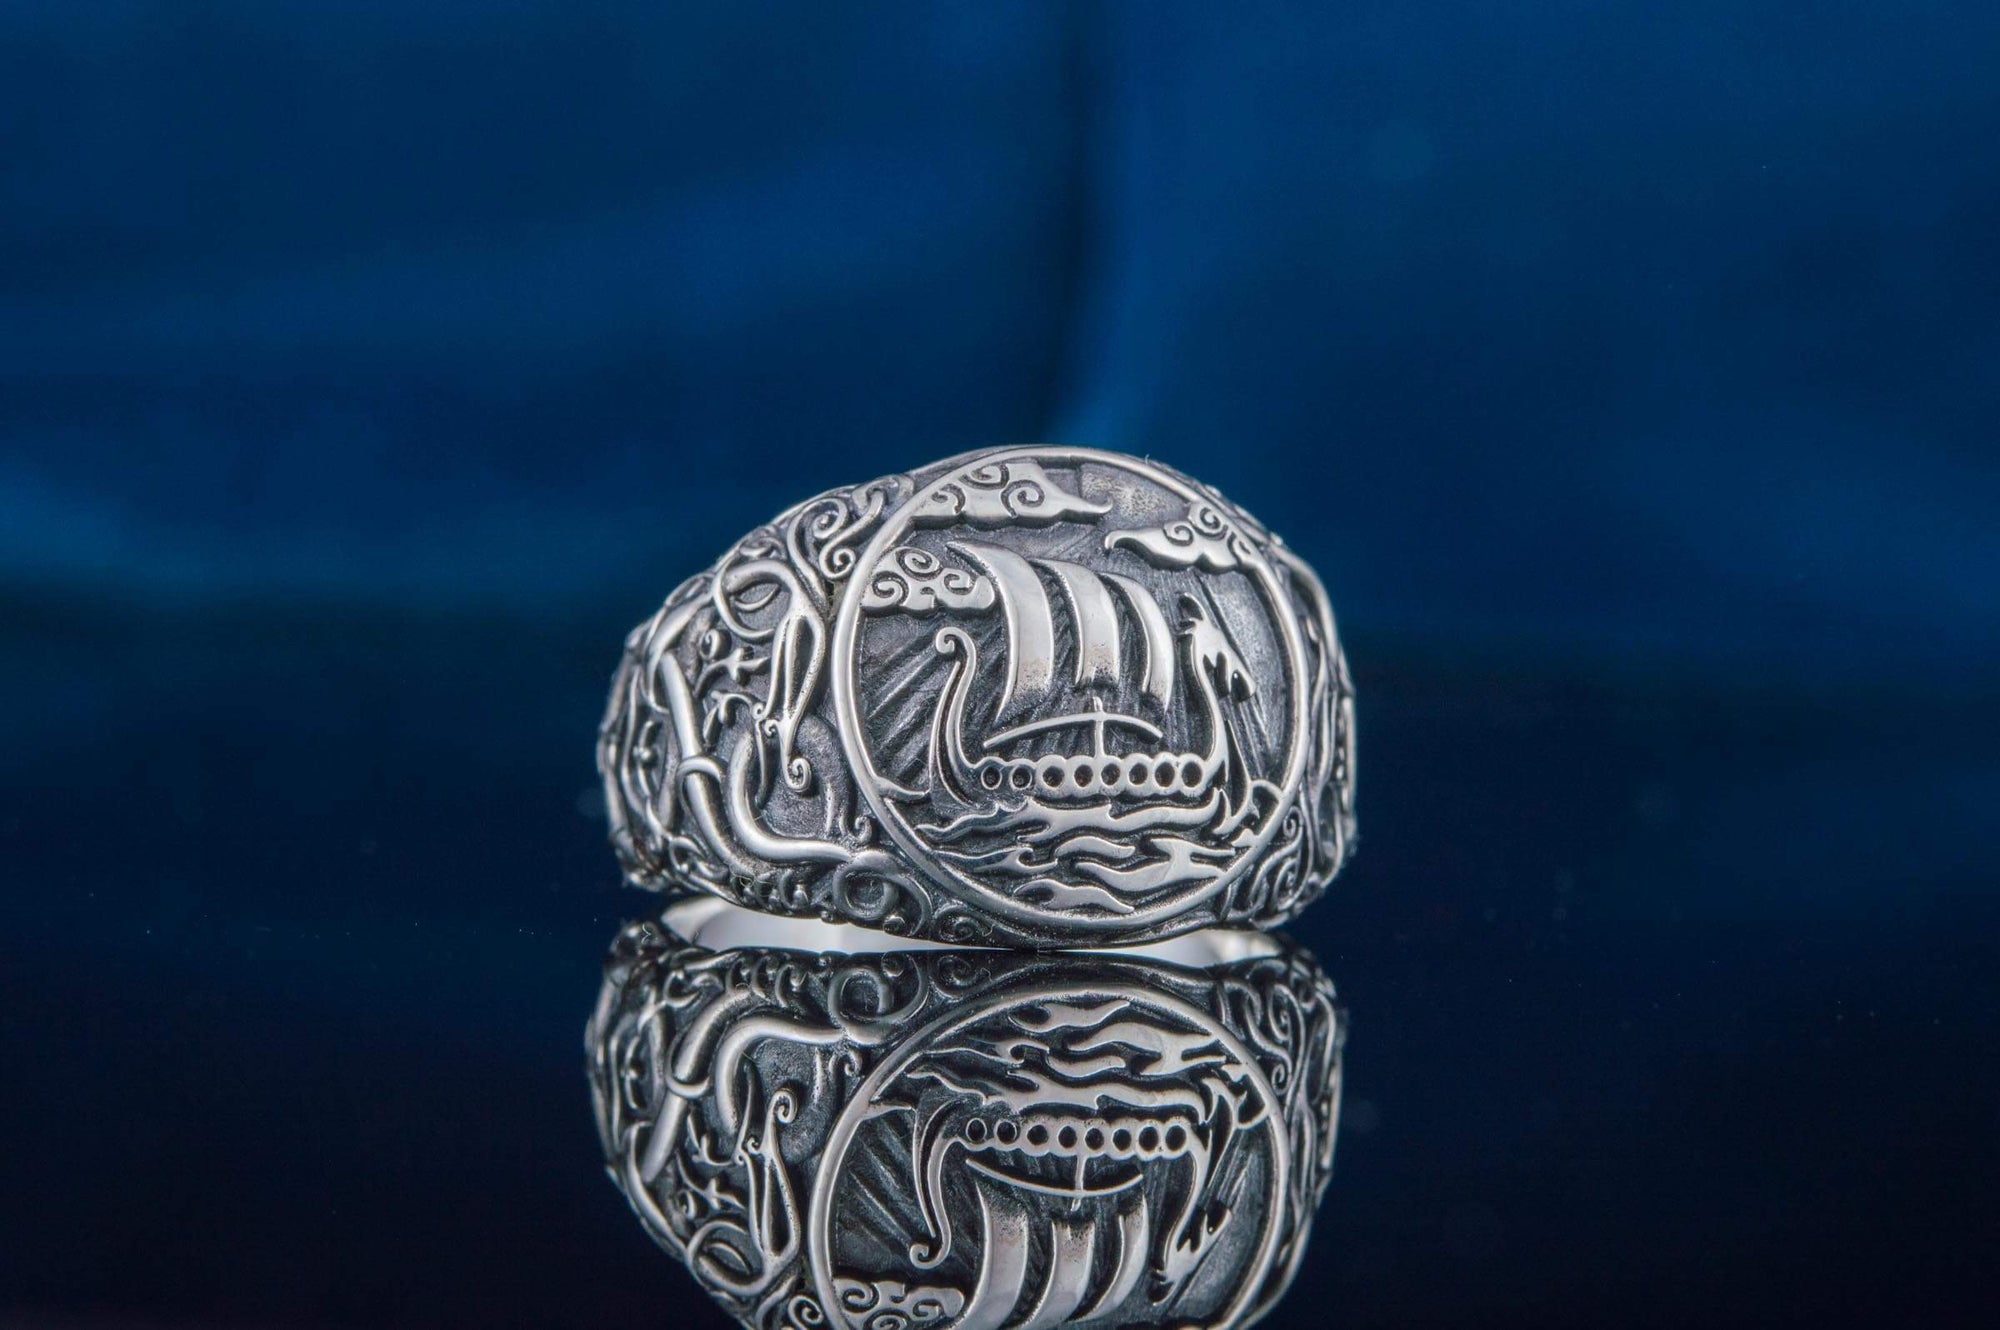 Rings Sterling Silver Ring with Drakkar and Urnes Symbol Ancient Treasures Ancientreasures Viking Odin Thor Mjolnir Celtic Ancient Egypt Norse Norse Mythology